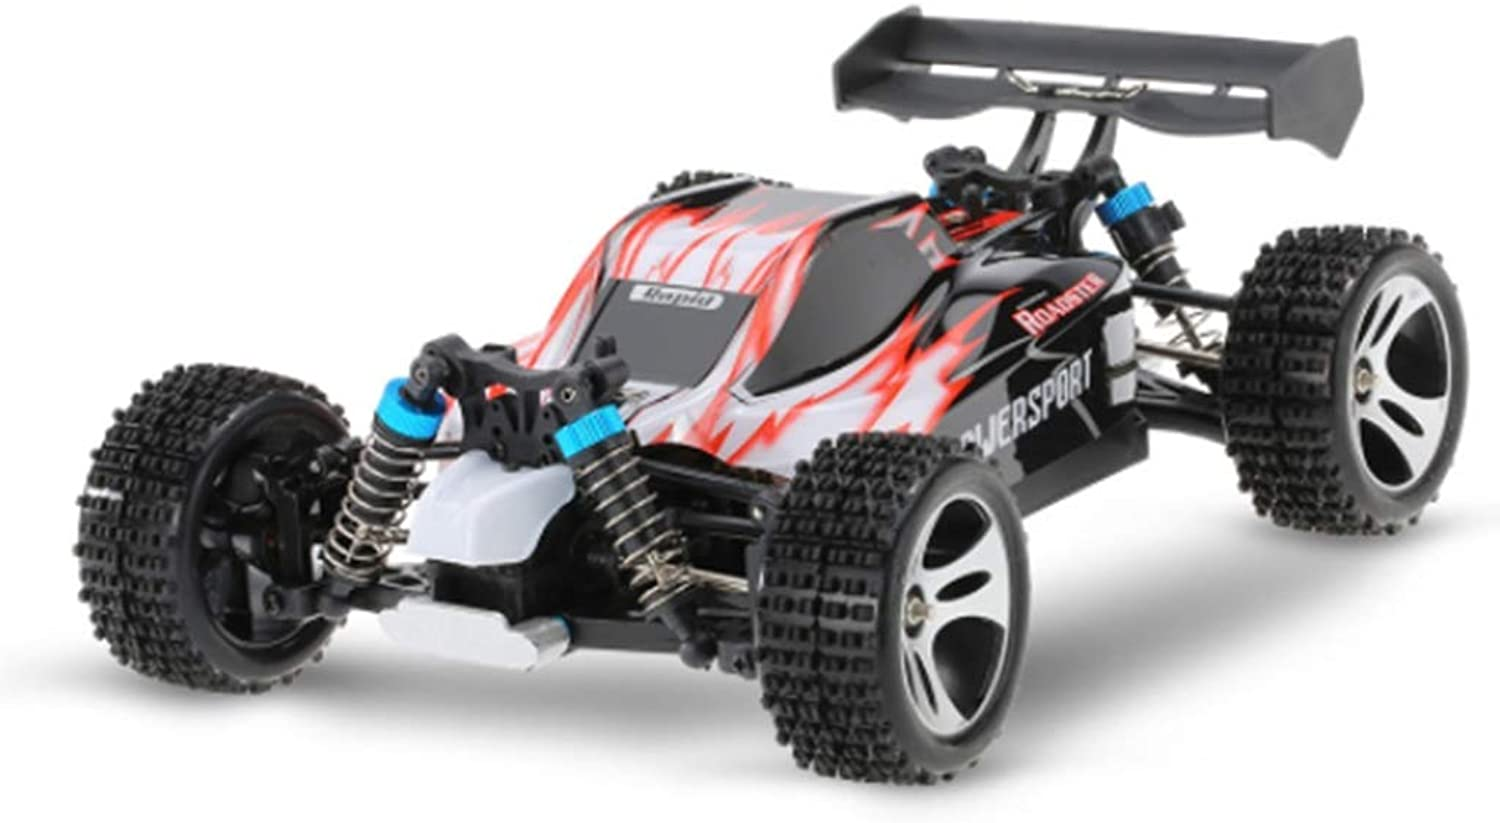 QINWEI Remote Controlled Car, Remote-controlled Car-Remote control charging of Off-road Vehicles